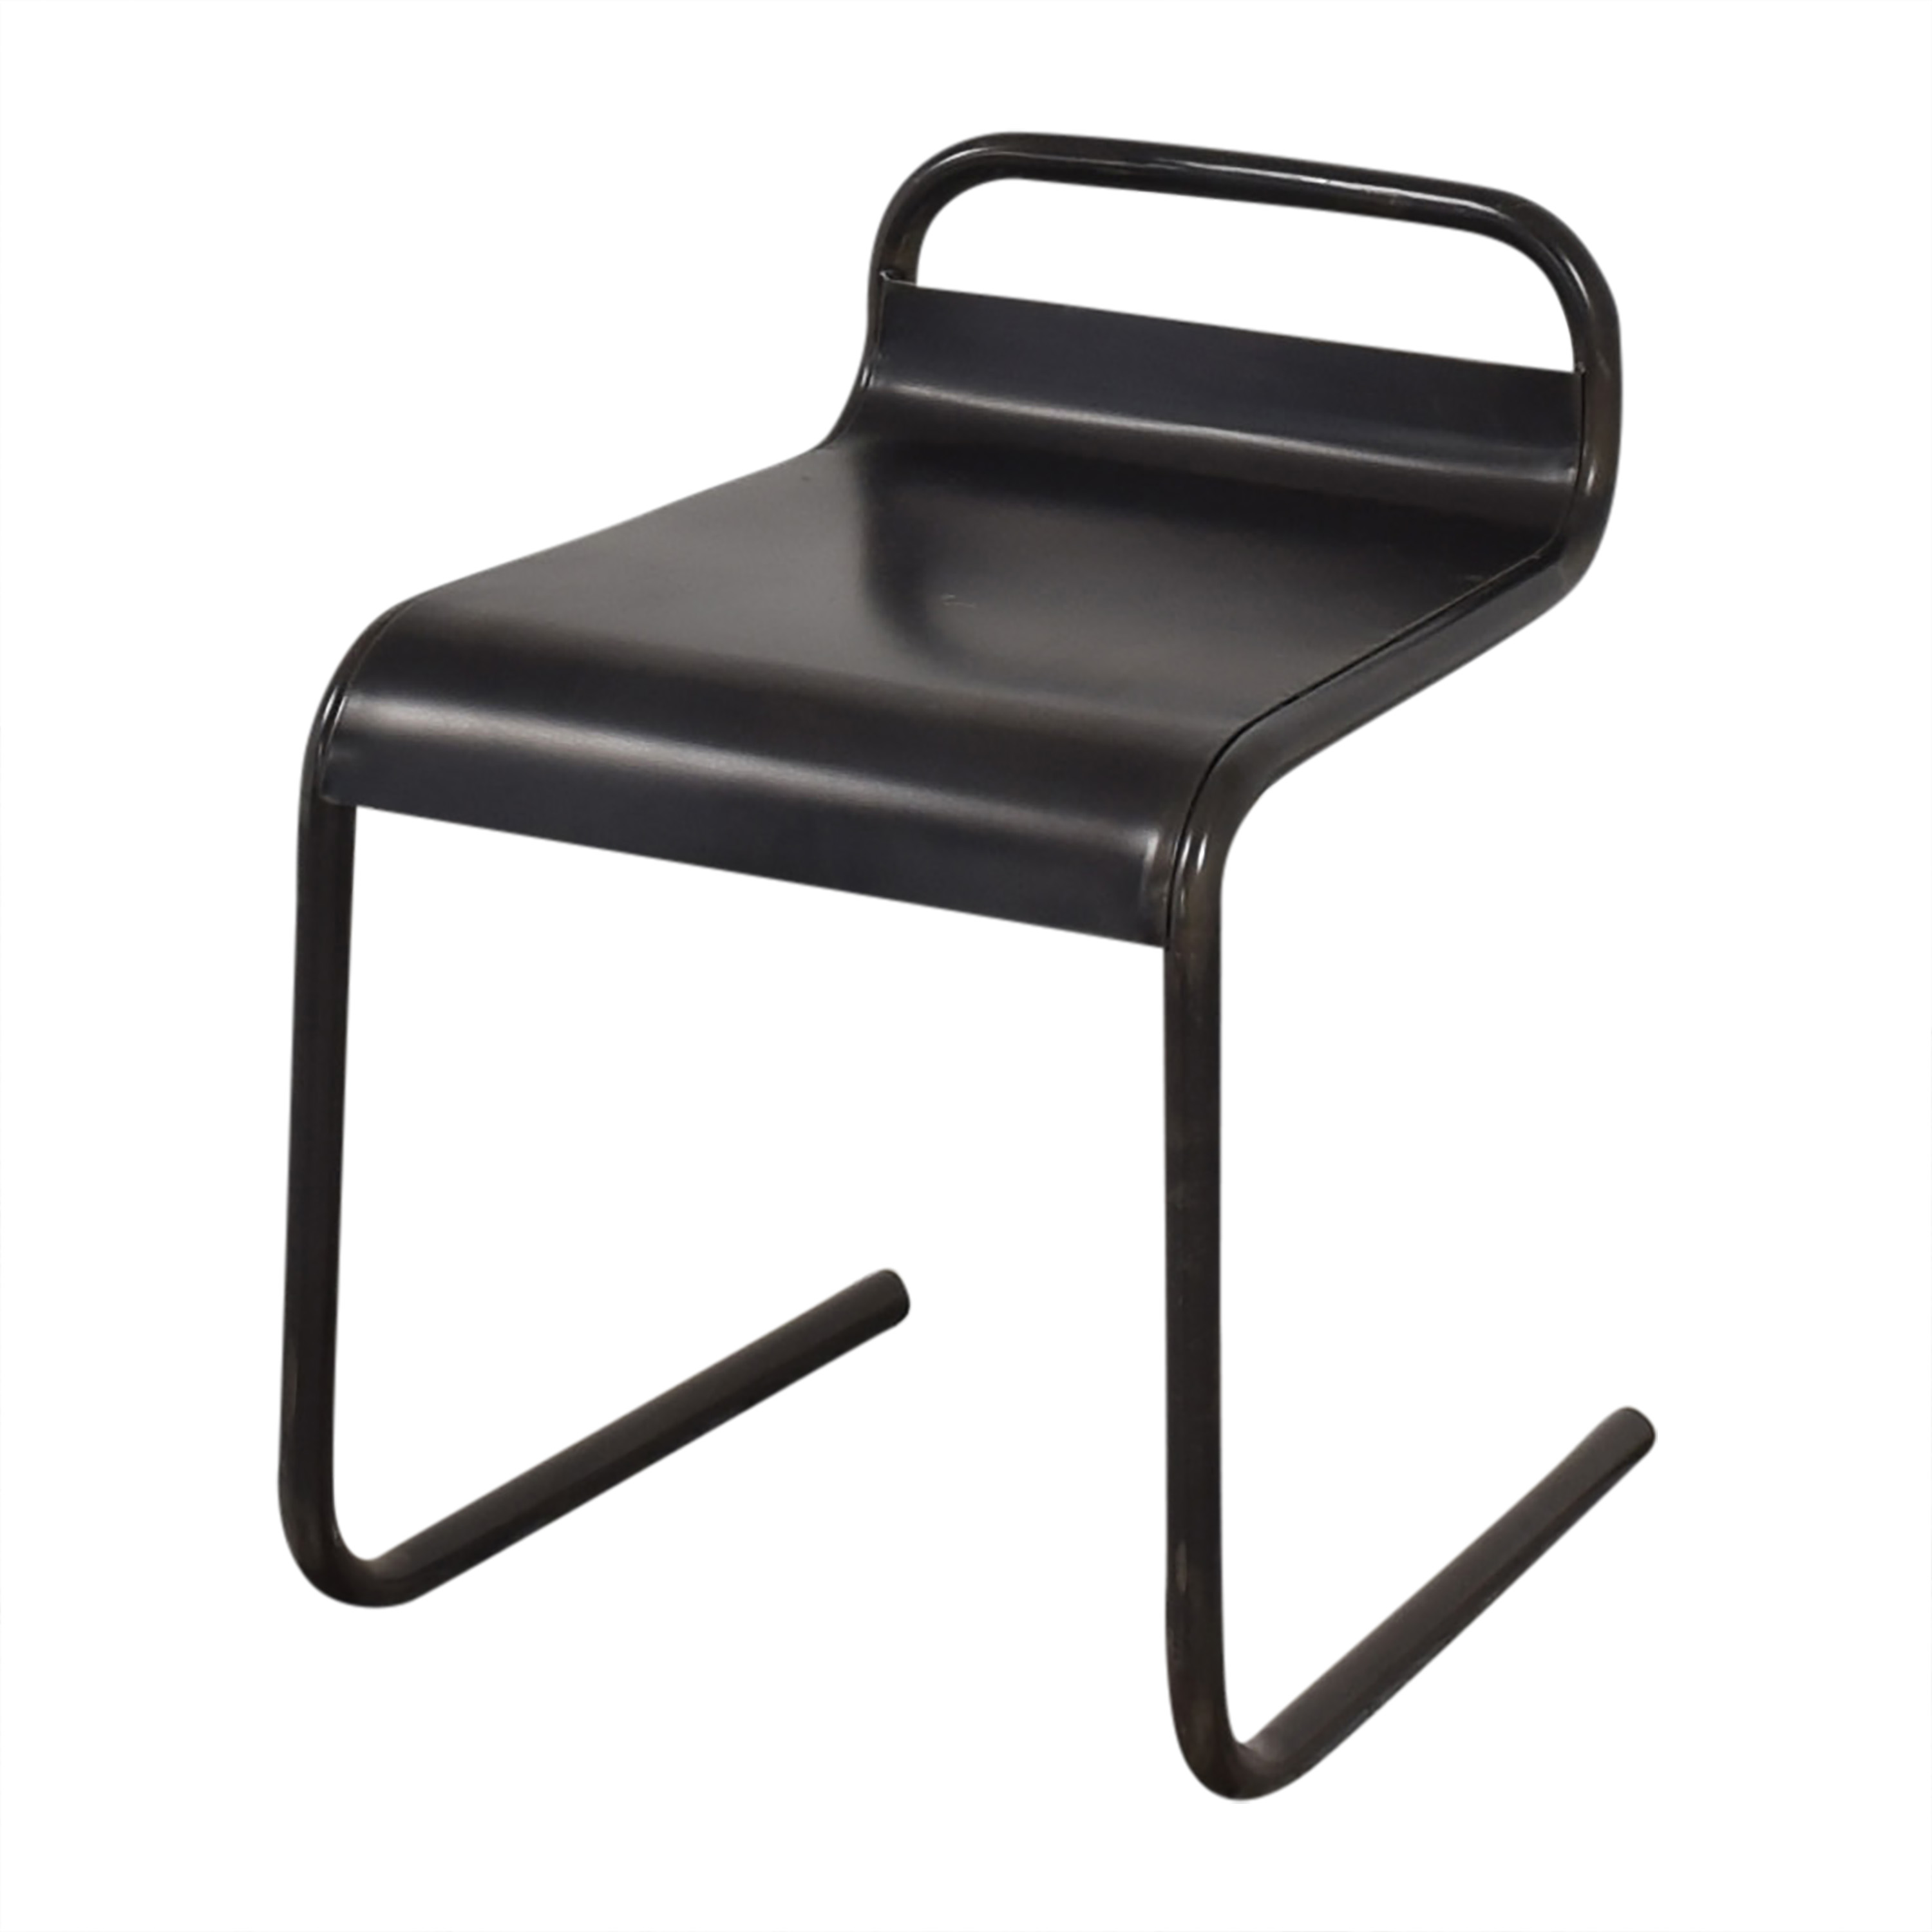 buy From The Source Minimal Dining Chairs From the Source Dining Chairs